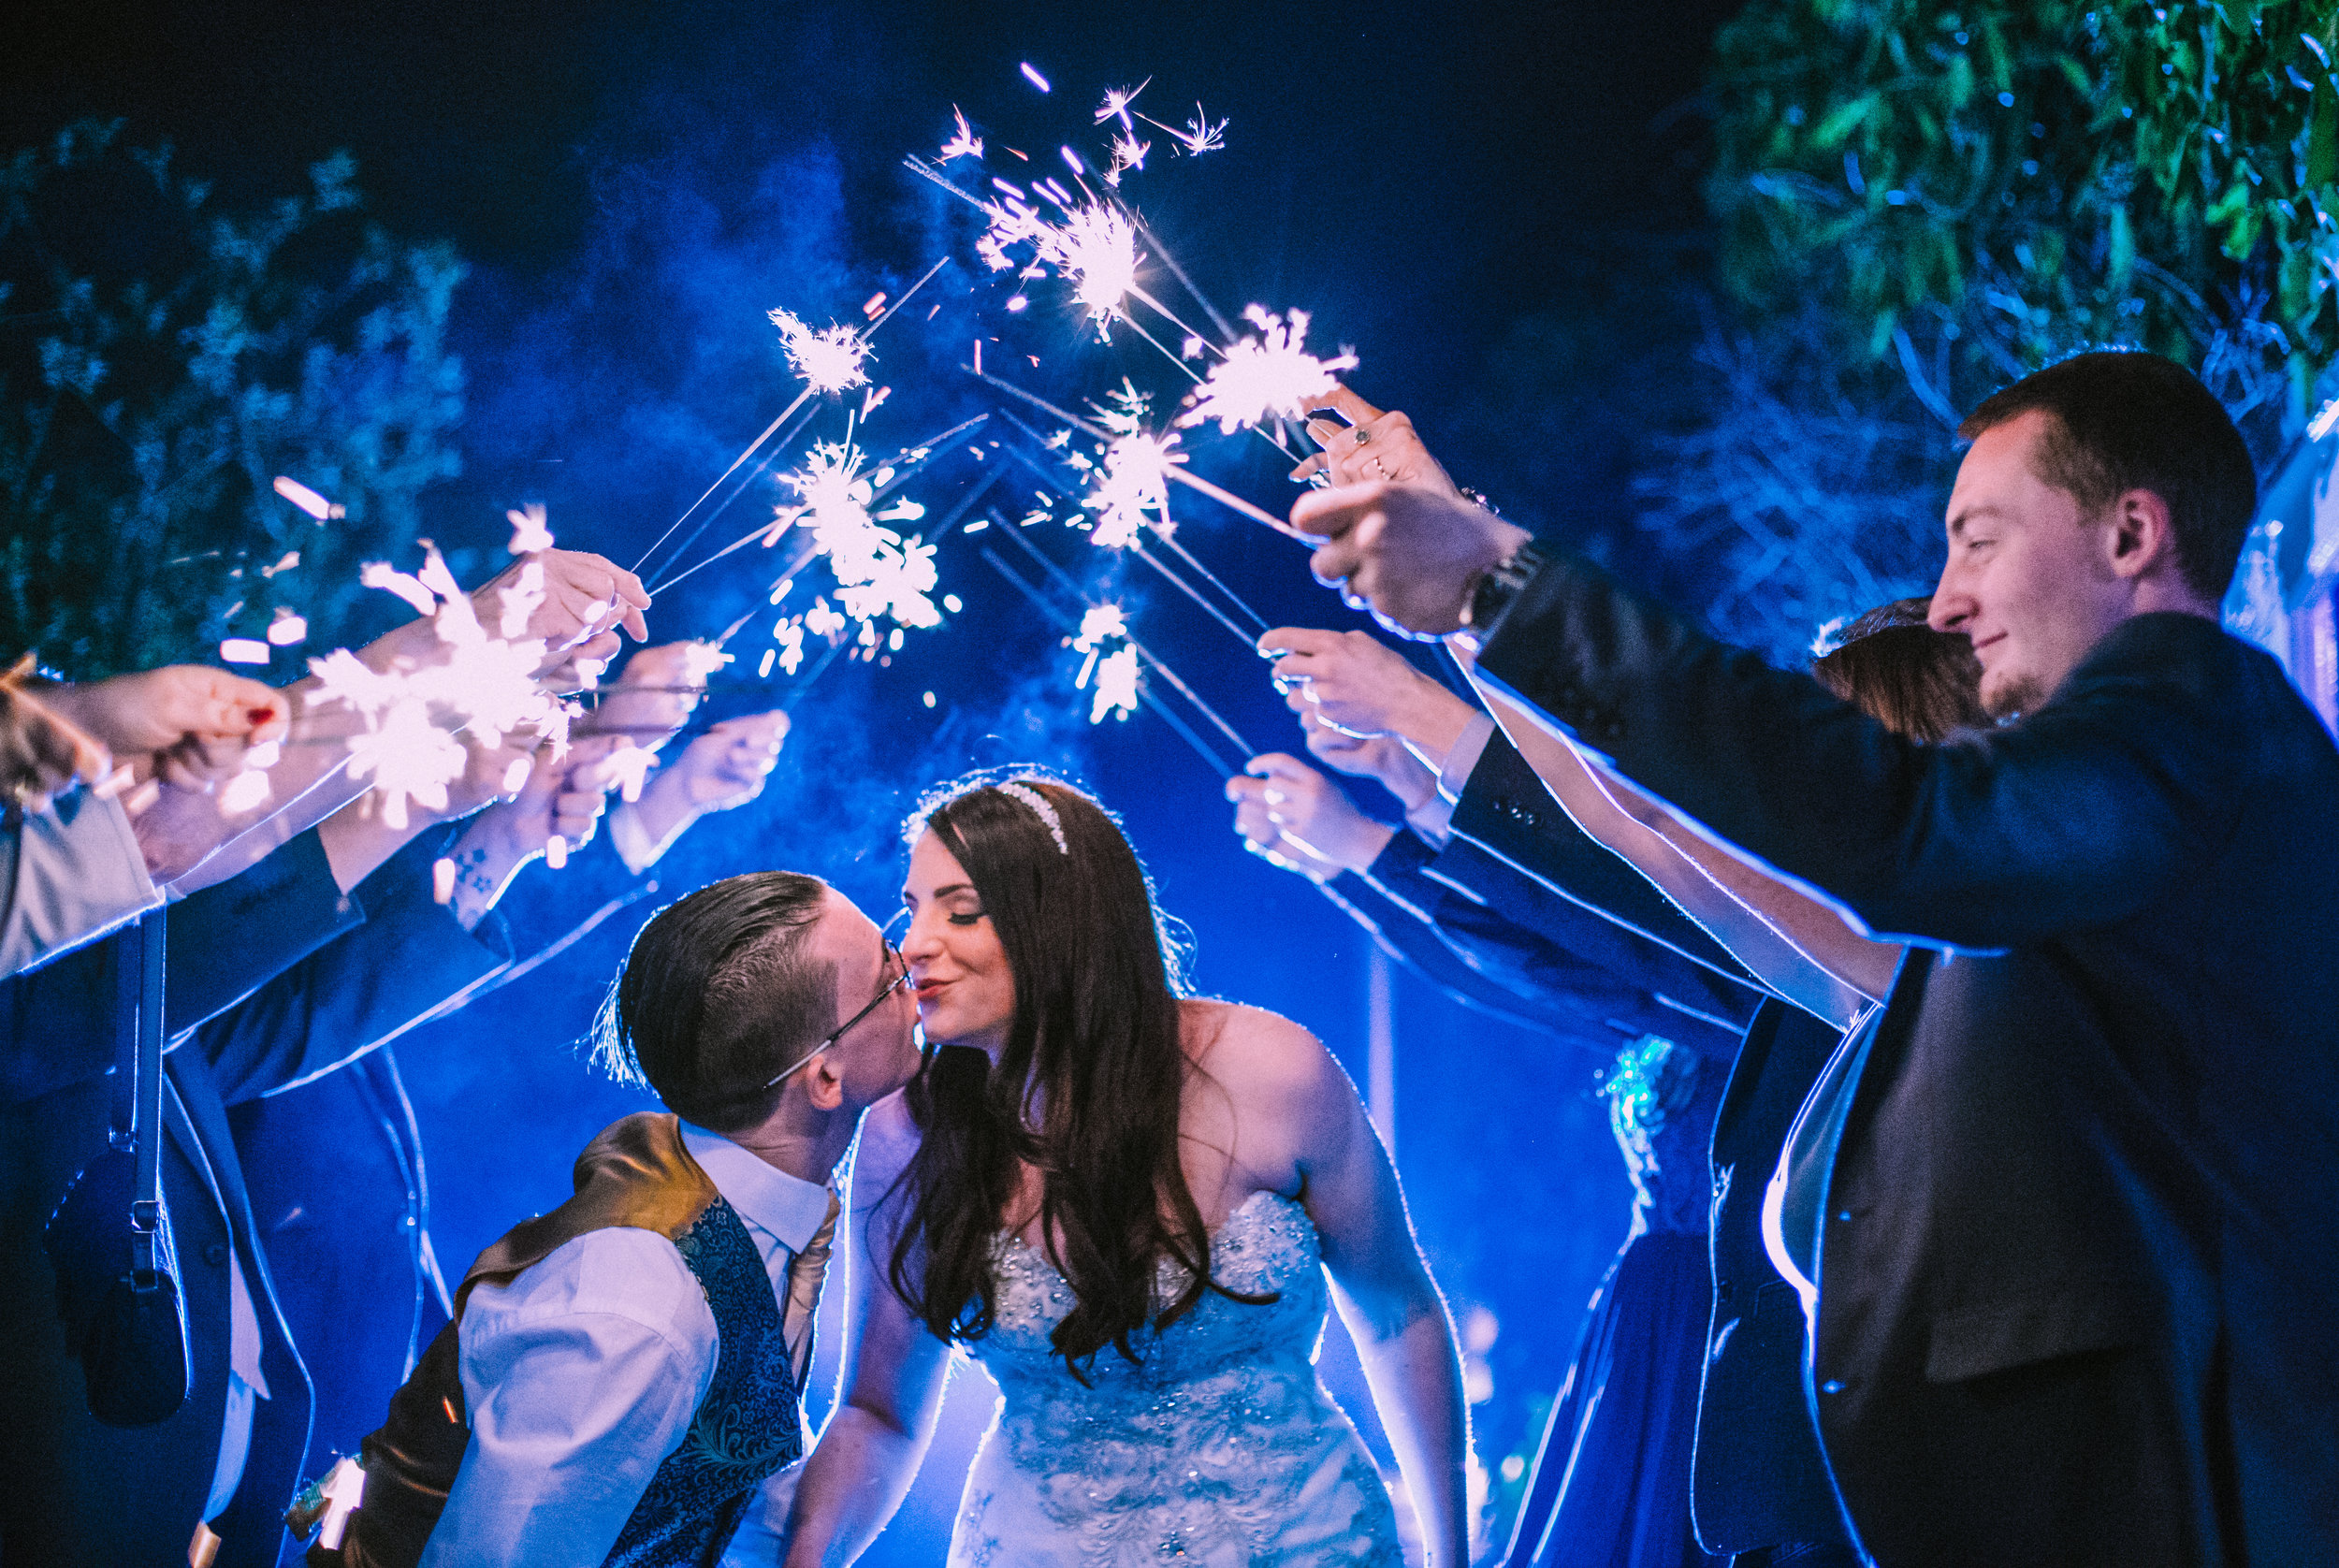 northbrook-park-farnham-hampshire-winter-spring-wedding-photography-sparkler-arch-65